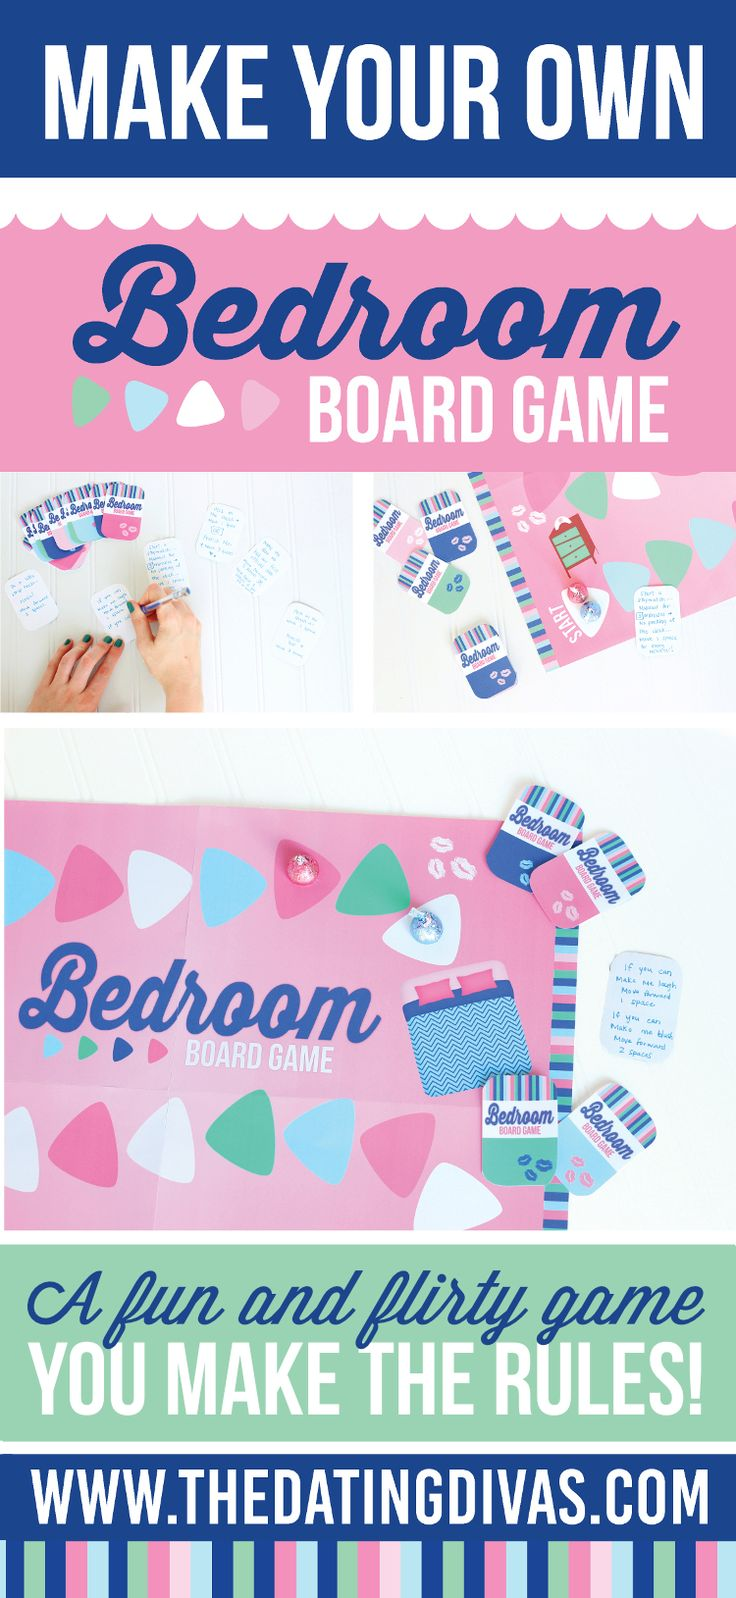 This DIY bedroom board game is something my husband would be so on board with! I can't wait to play! www.TheDatingDivas.com